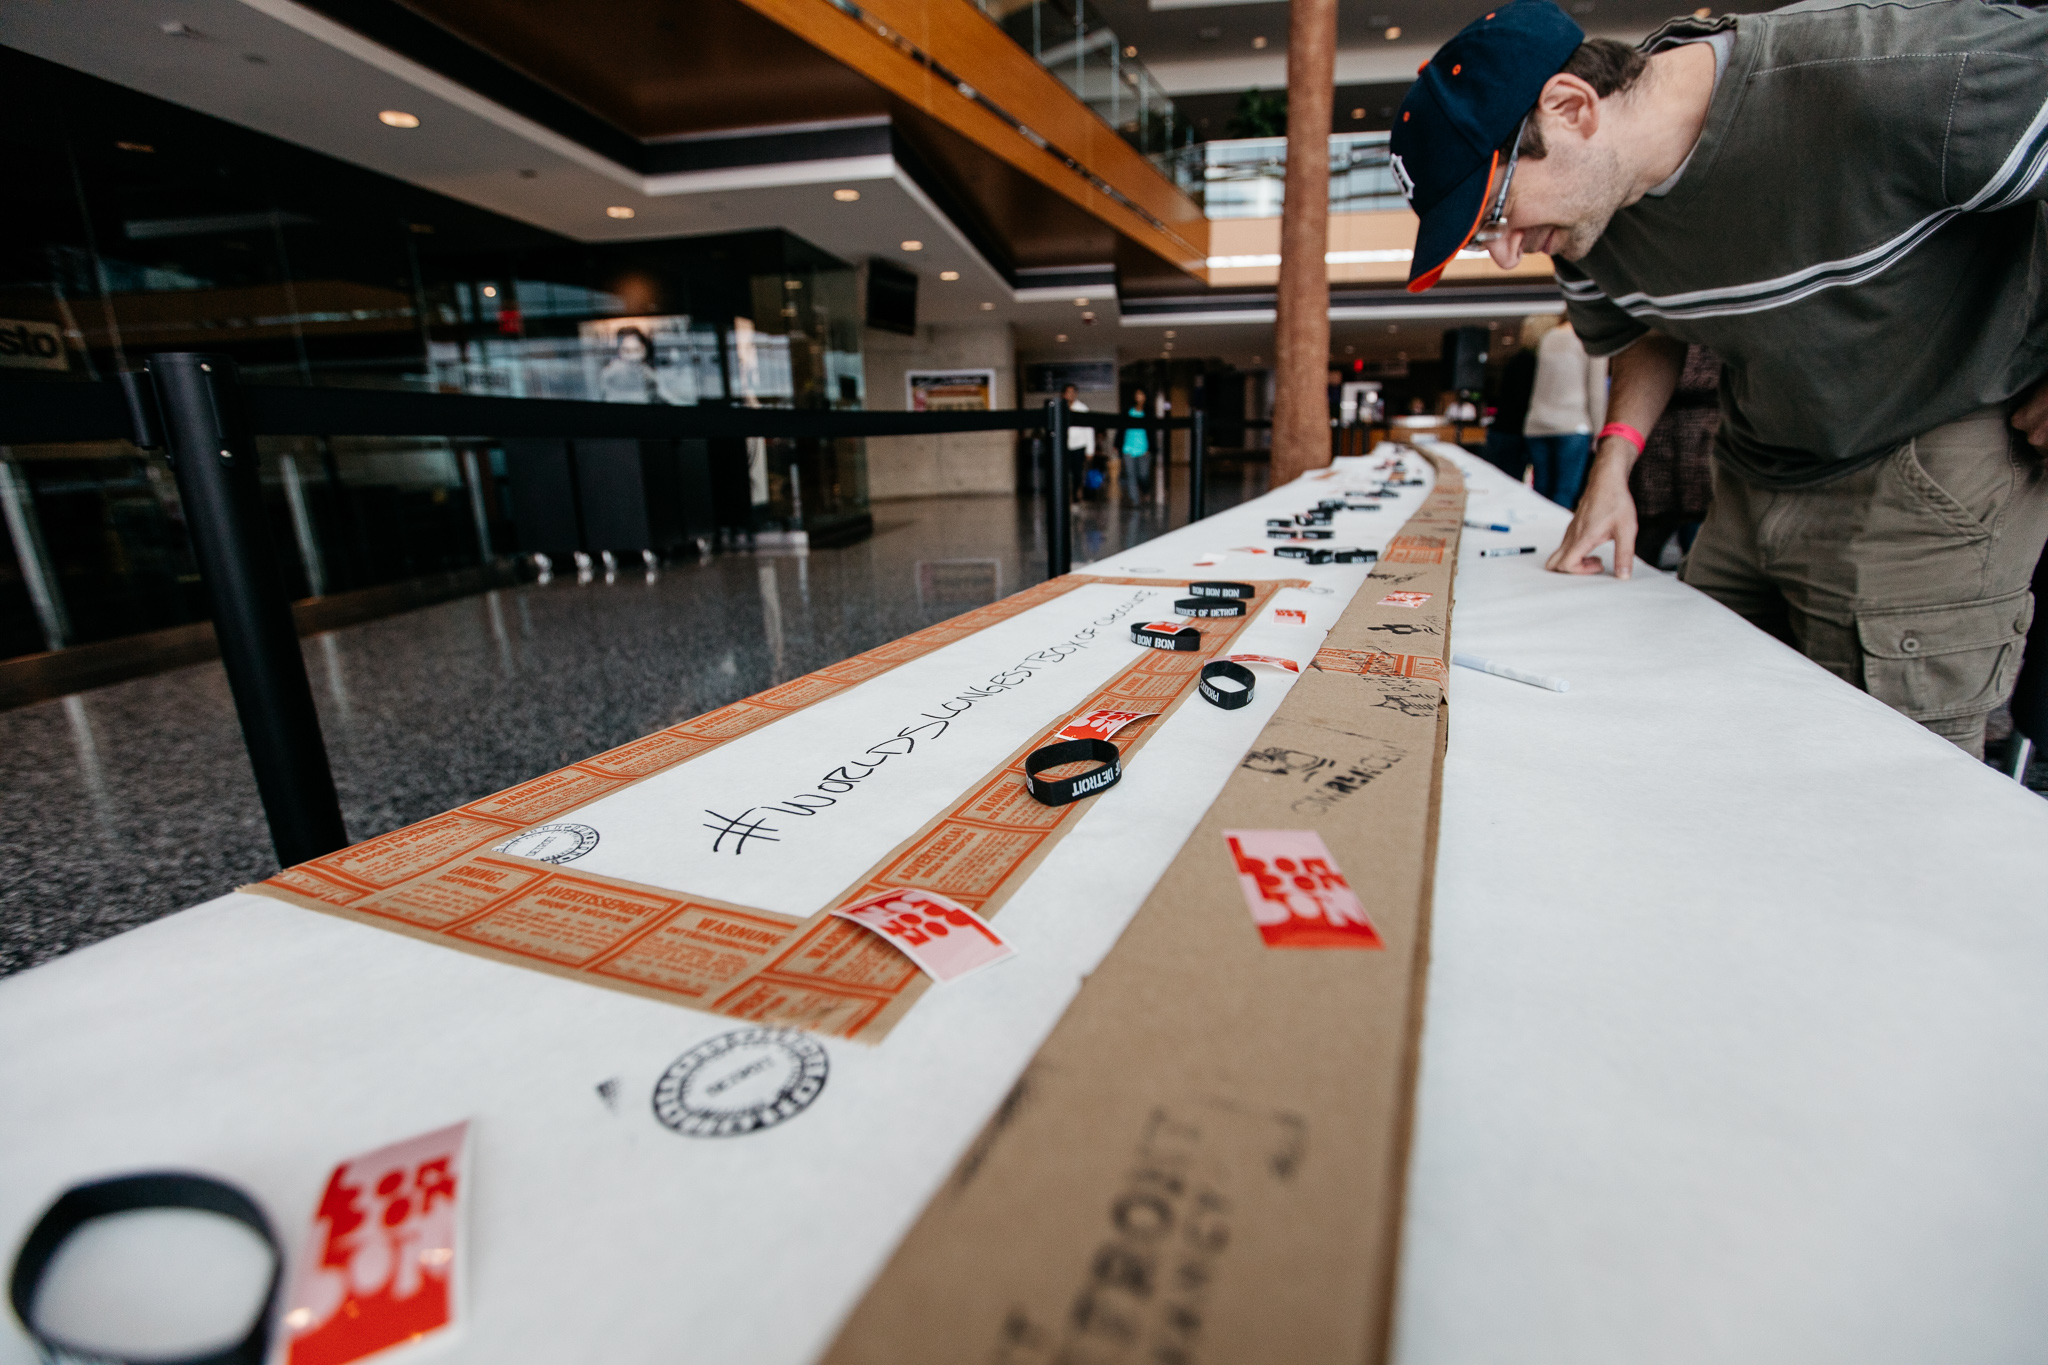 Visitors were encouraged to sign the chocolate box on display at the Renaissance Center.